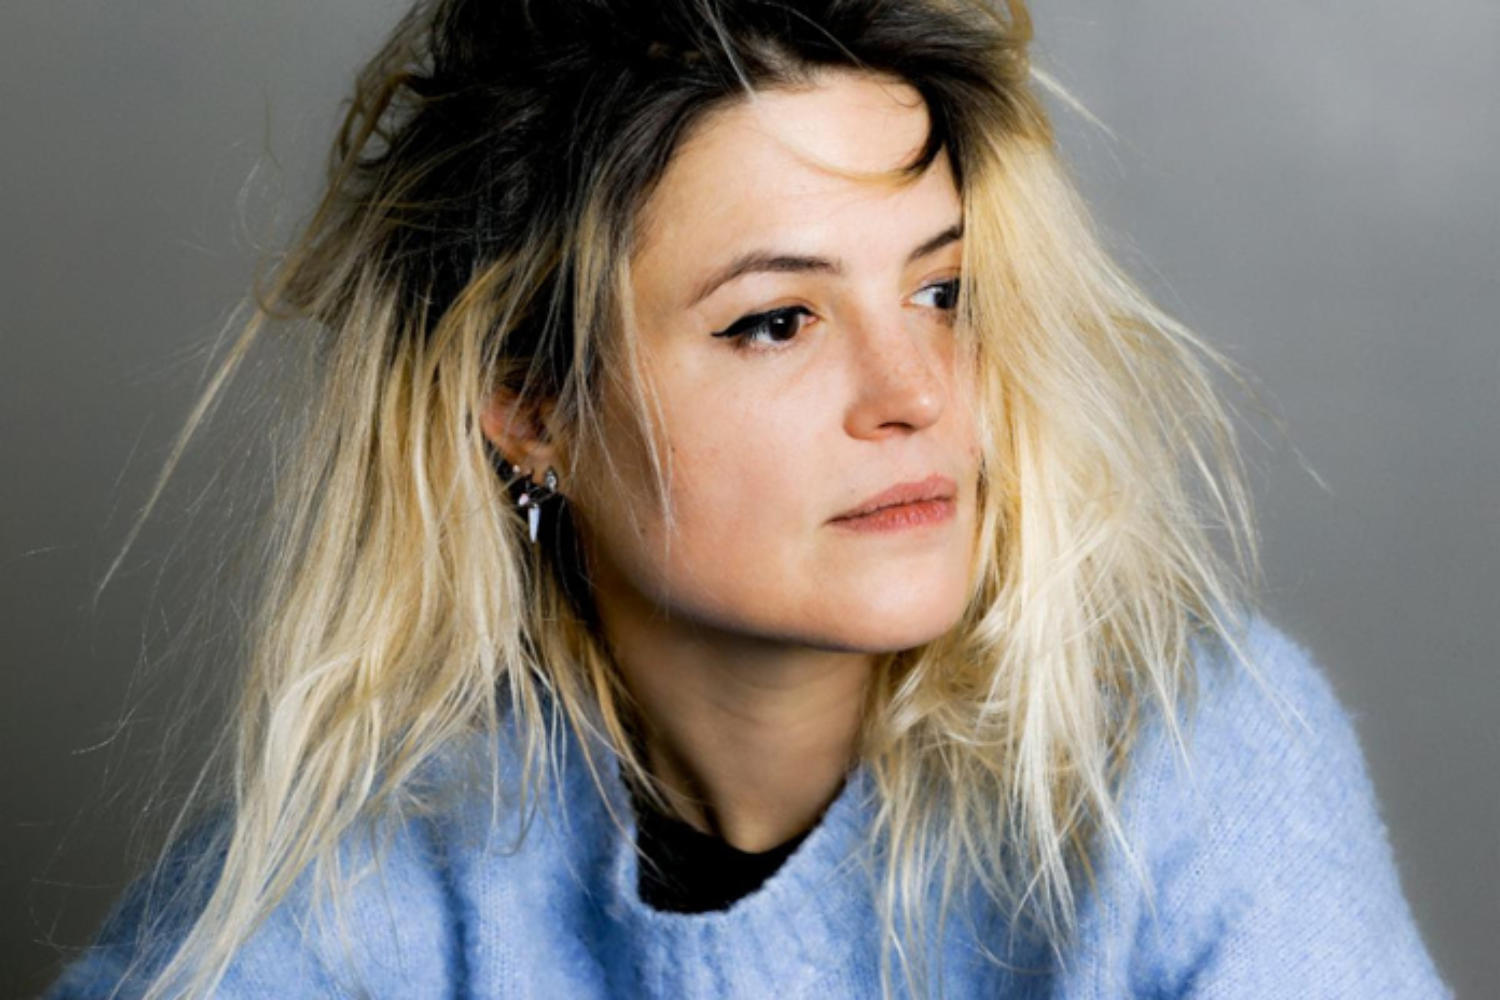 Alison Mosshart releases debut solo single 'Rise'